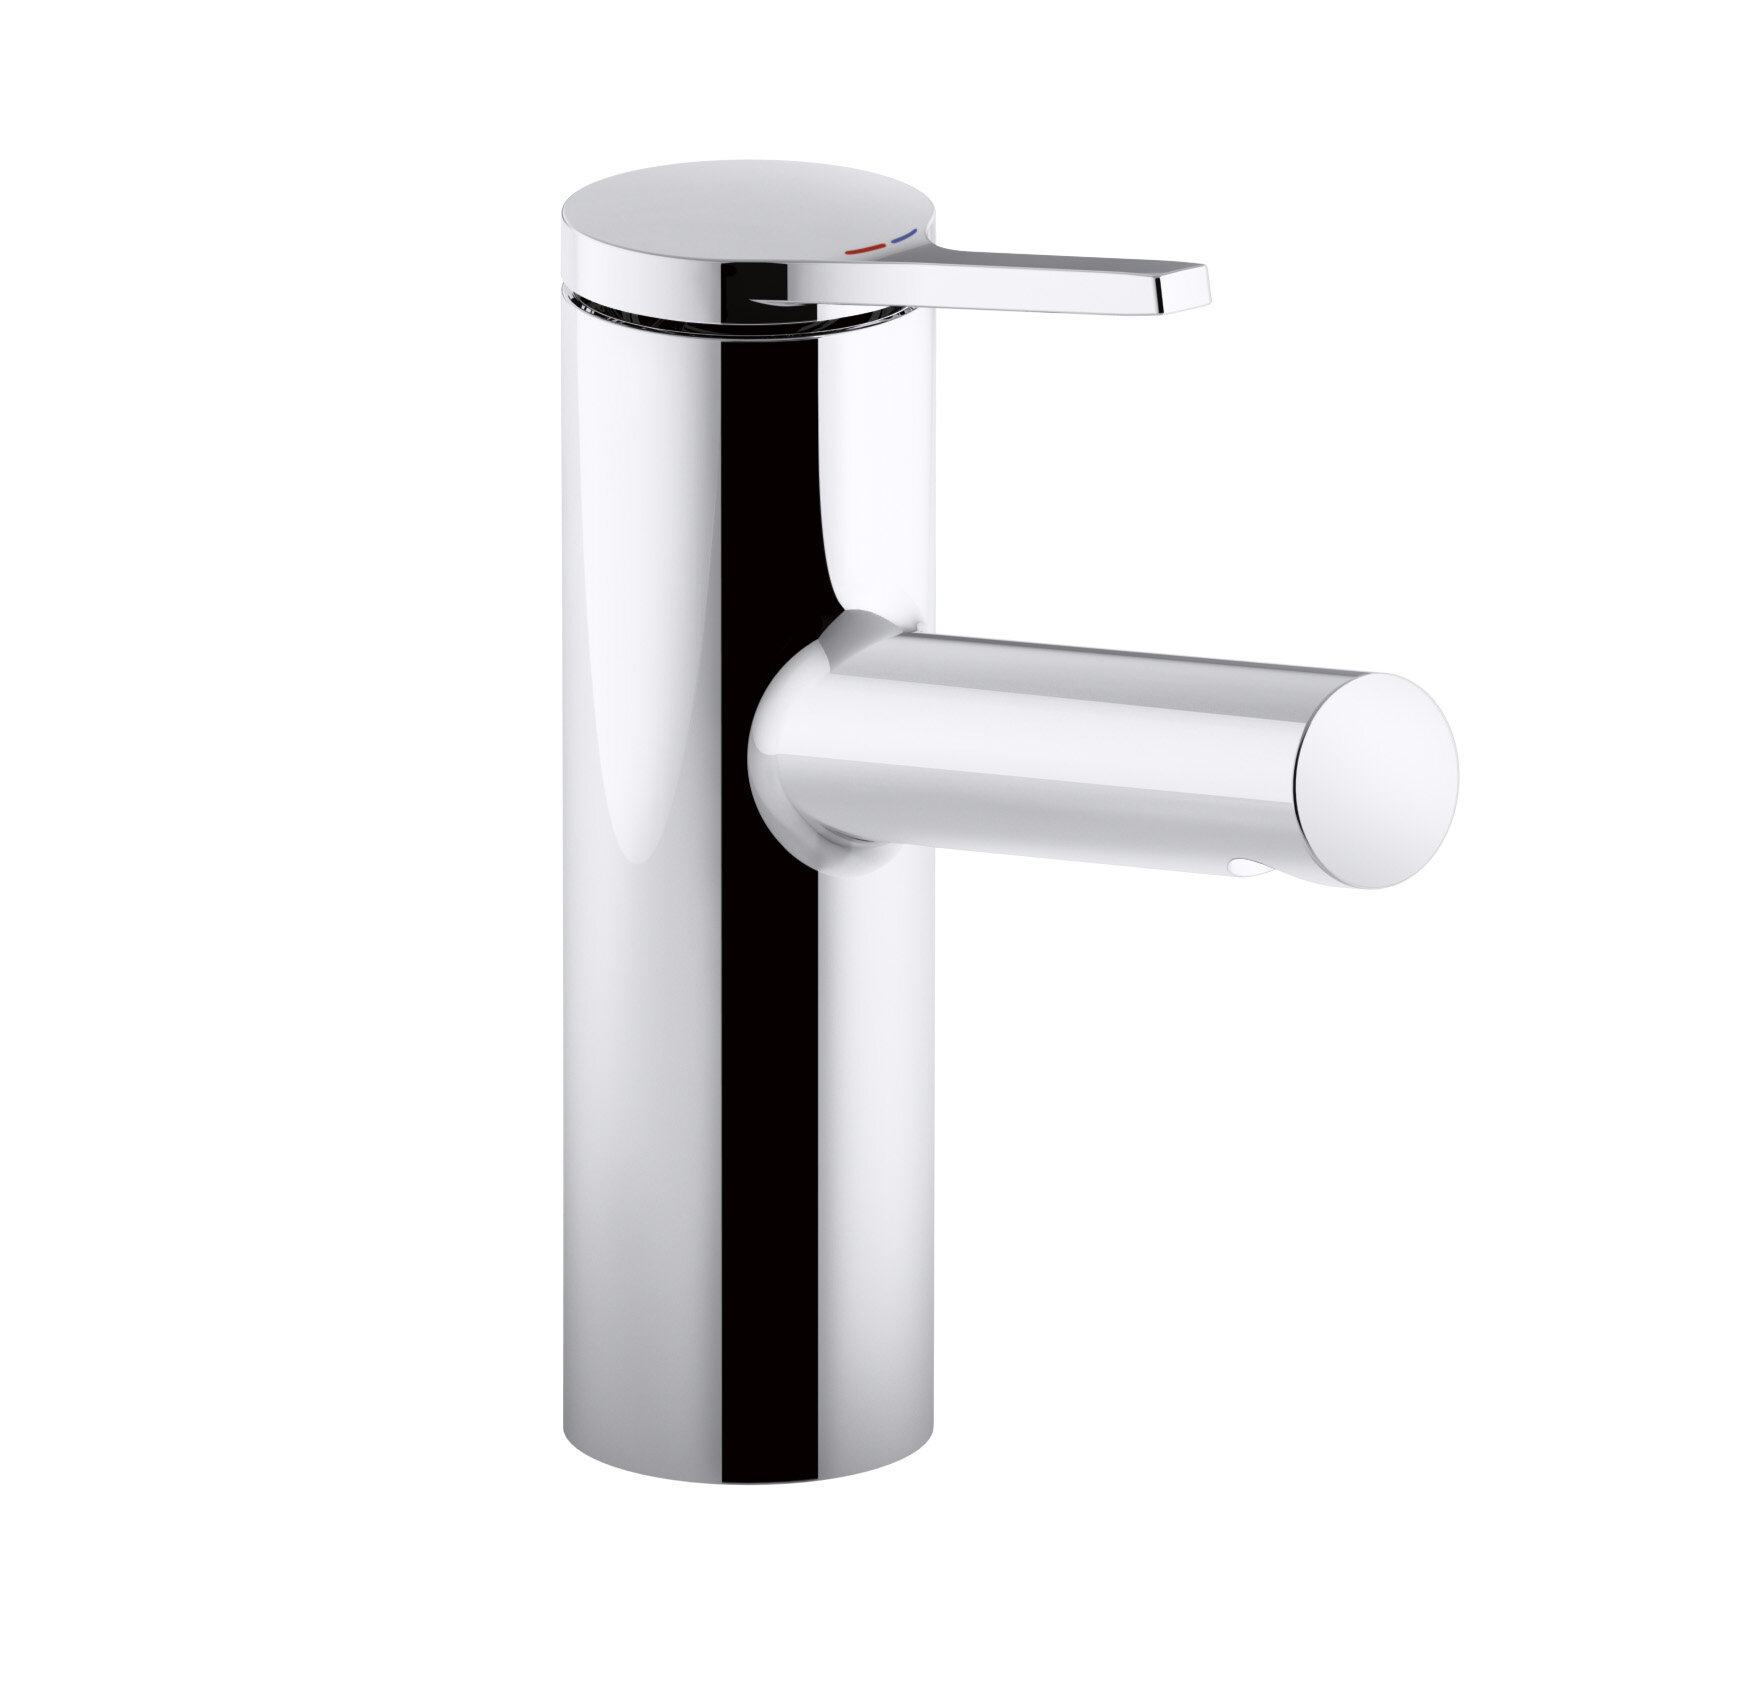 deck faucets led brushed nickel single faucet shower handle bath improvement changing home tub in handheld mount waterfall from taps bathtub color item on